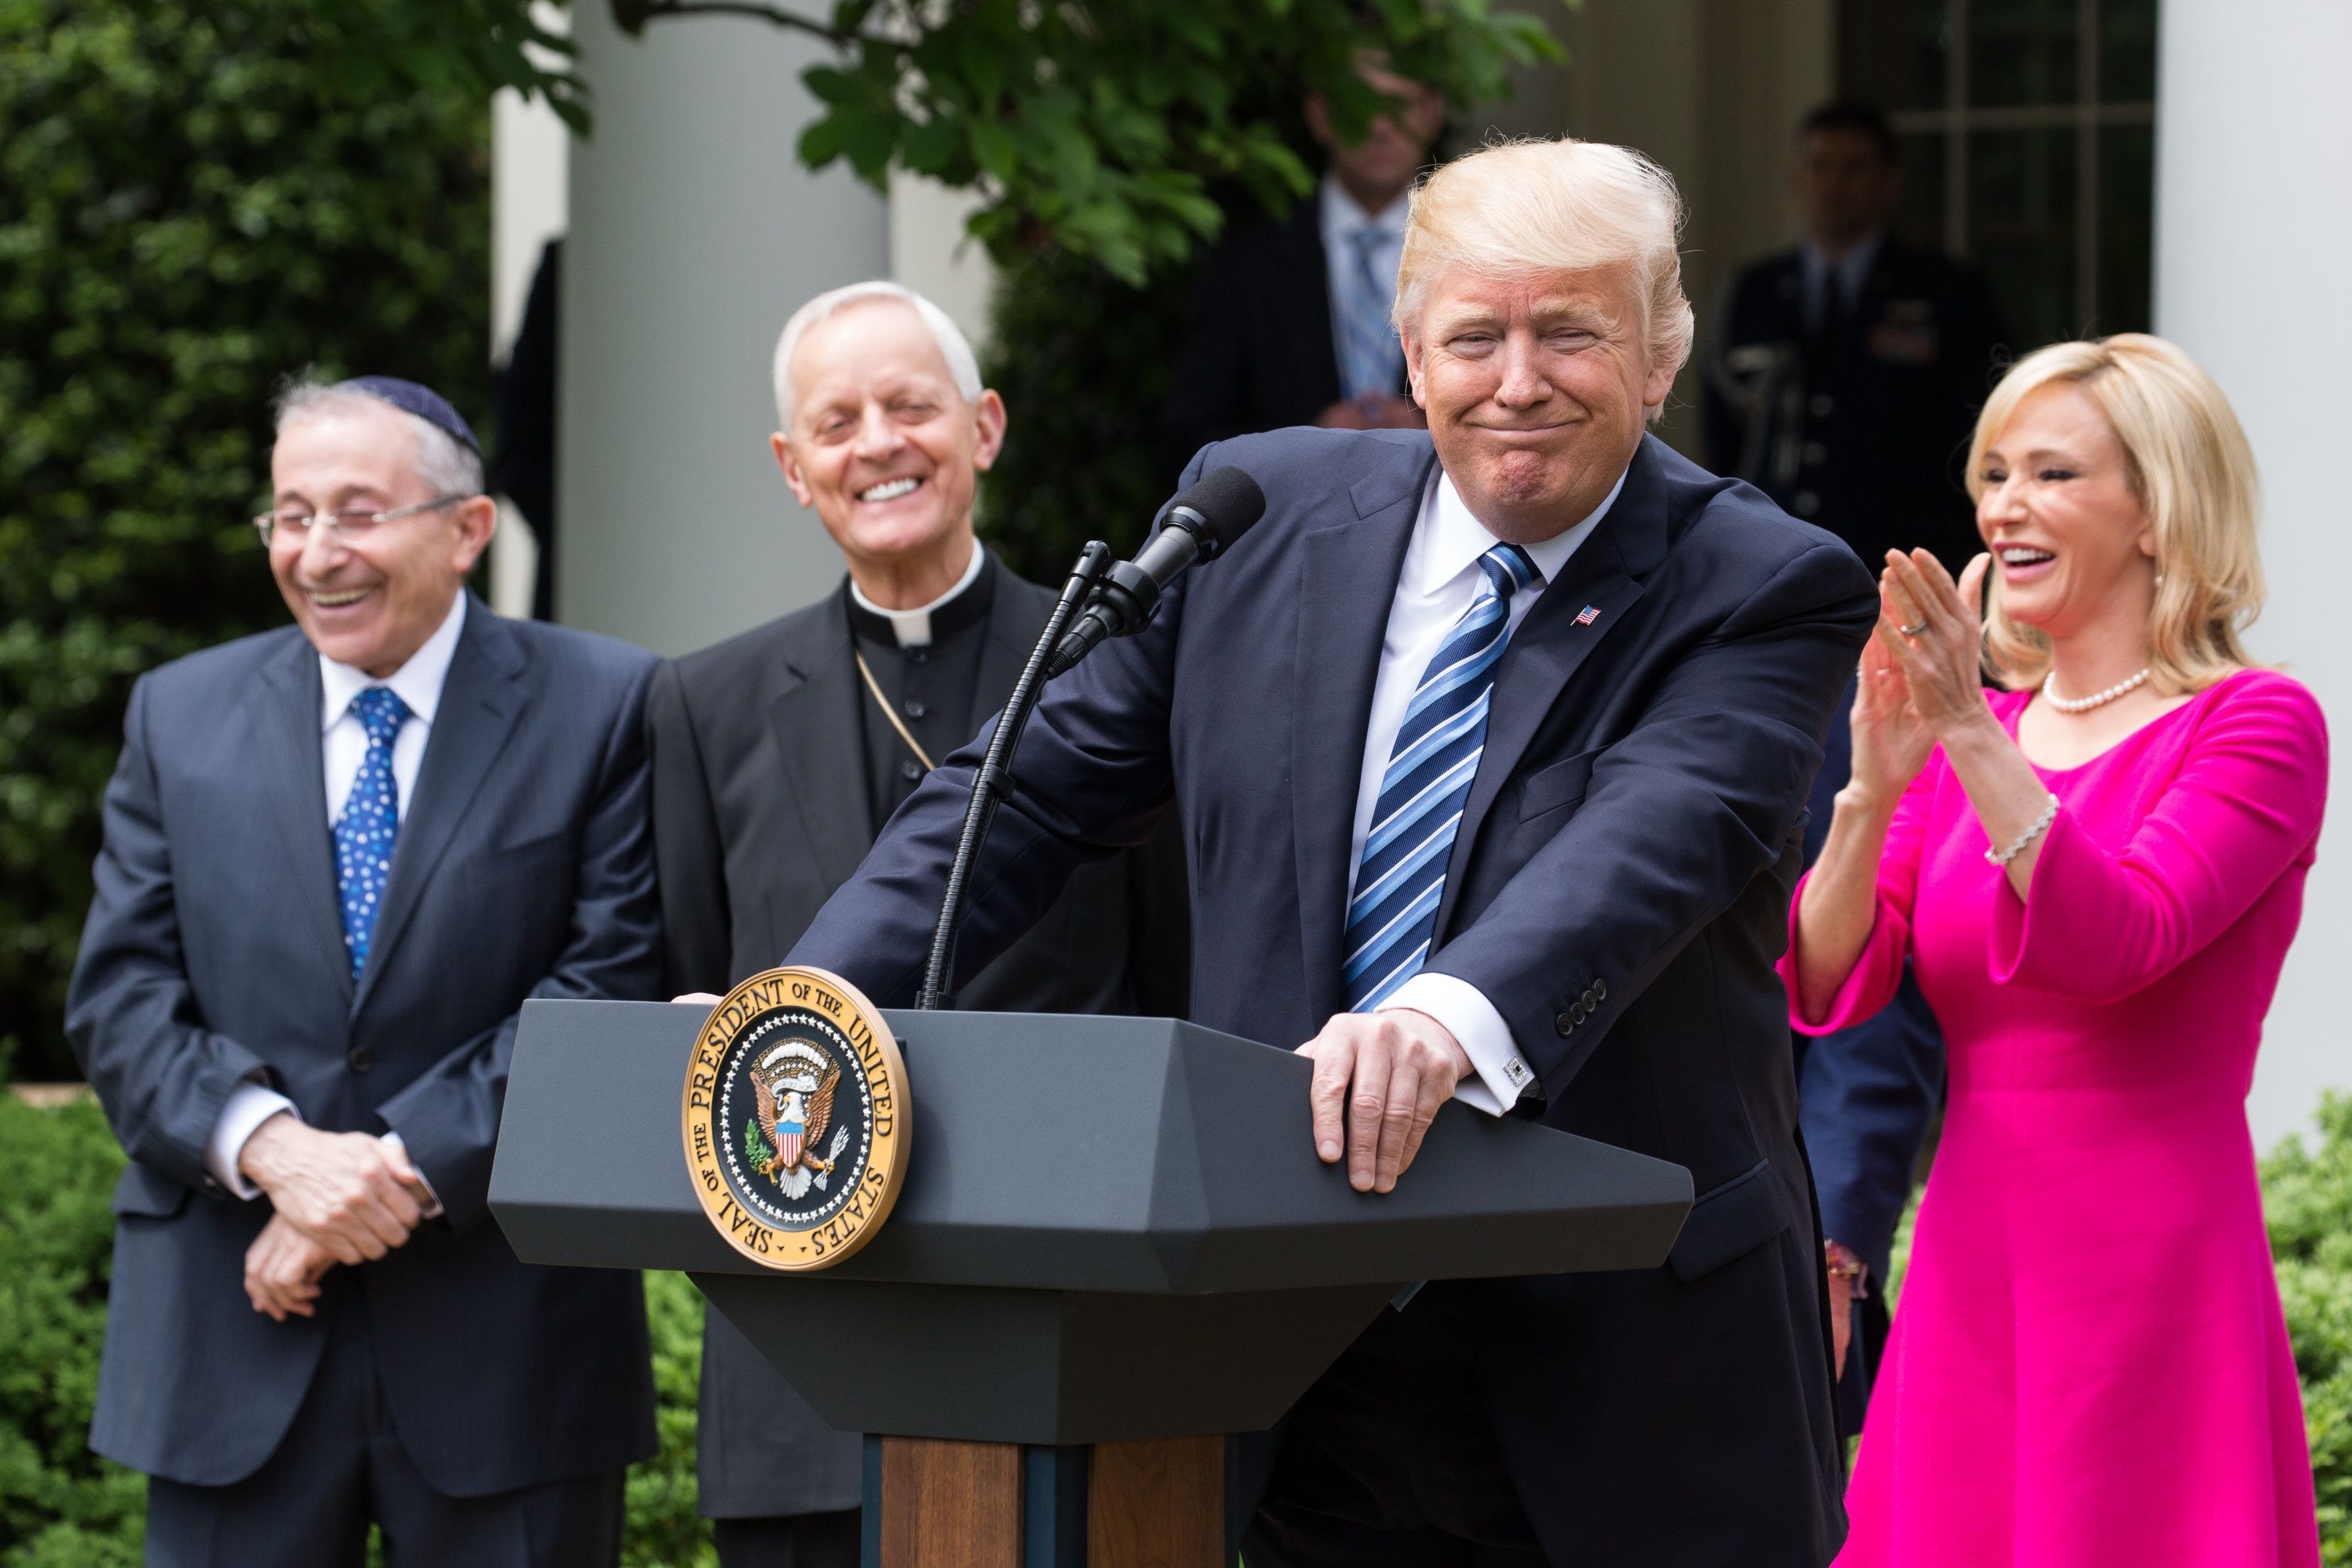 President Trump, at the National Day of Prayer ceremony, in the Rose Garden of the White House, On Thursday, May 4, 2017. (Photo by Cheriss May/NurPhoto via Getty Images)